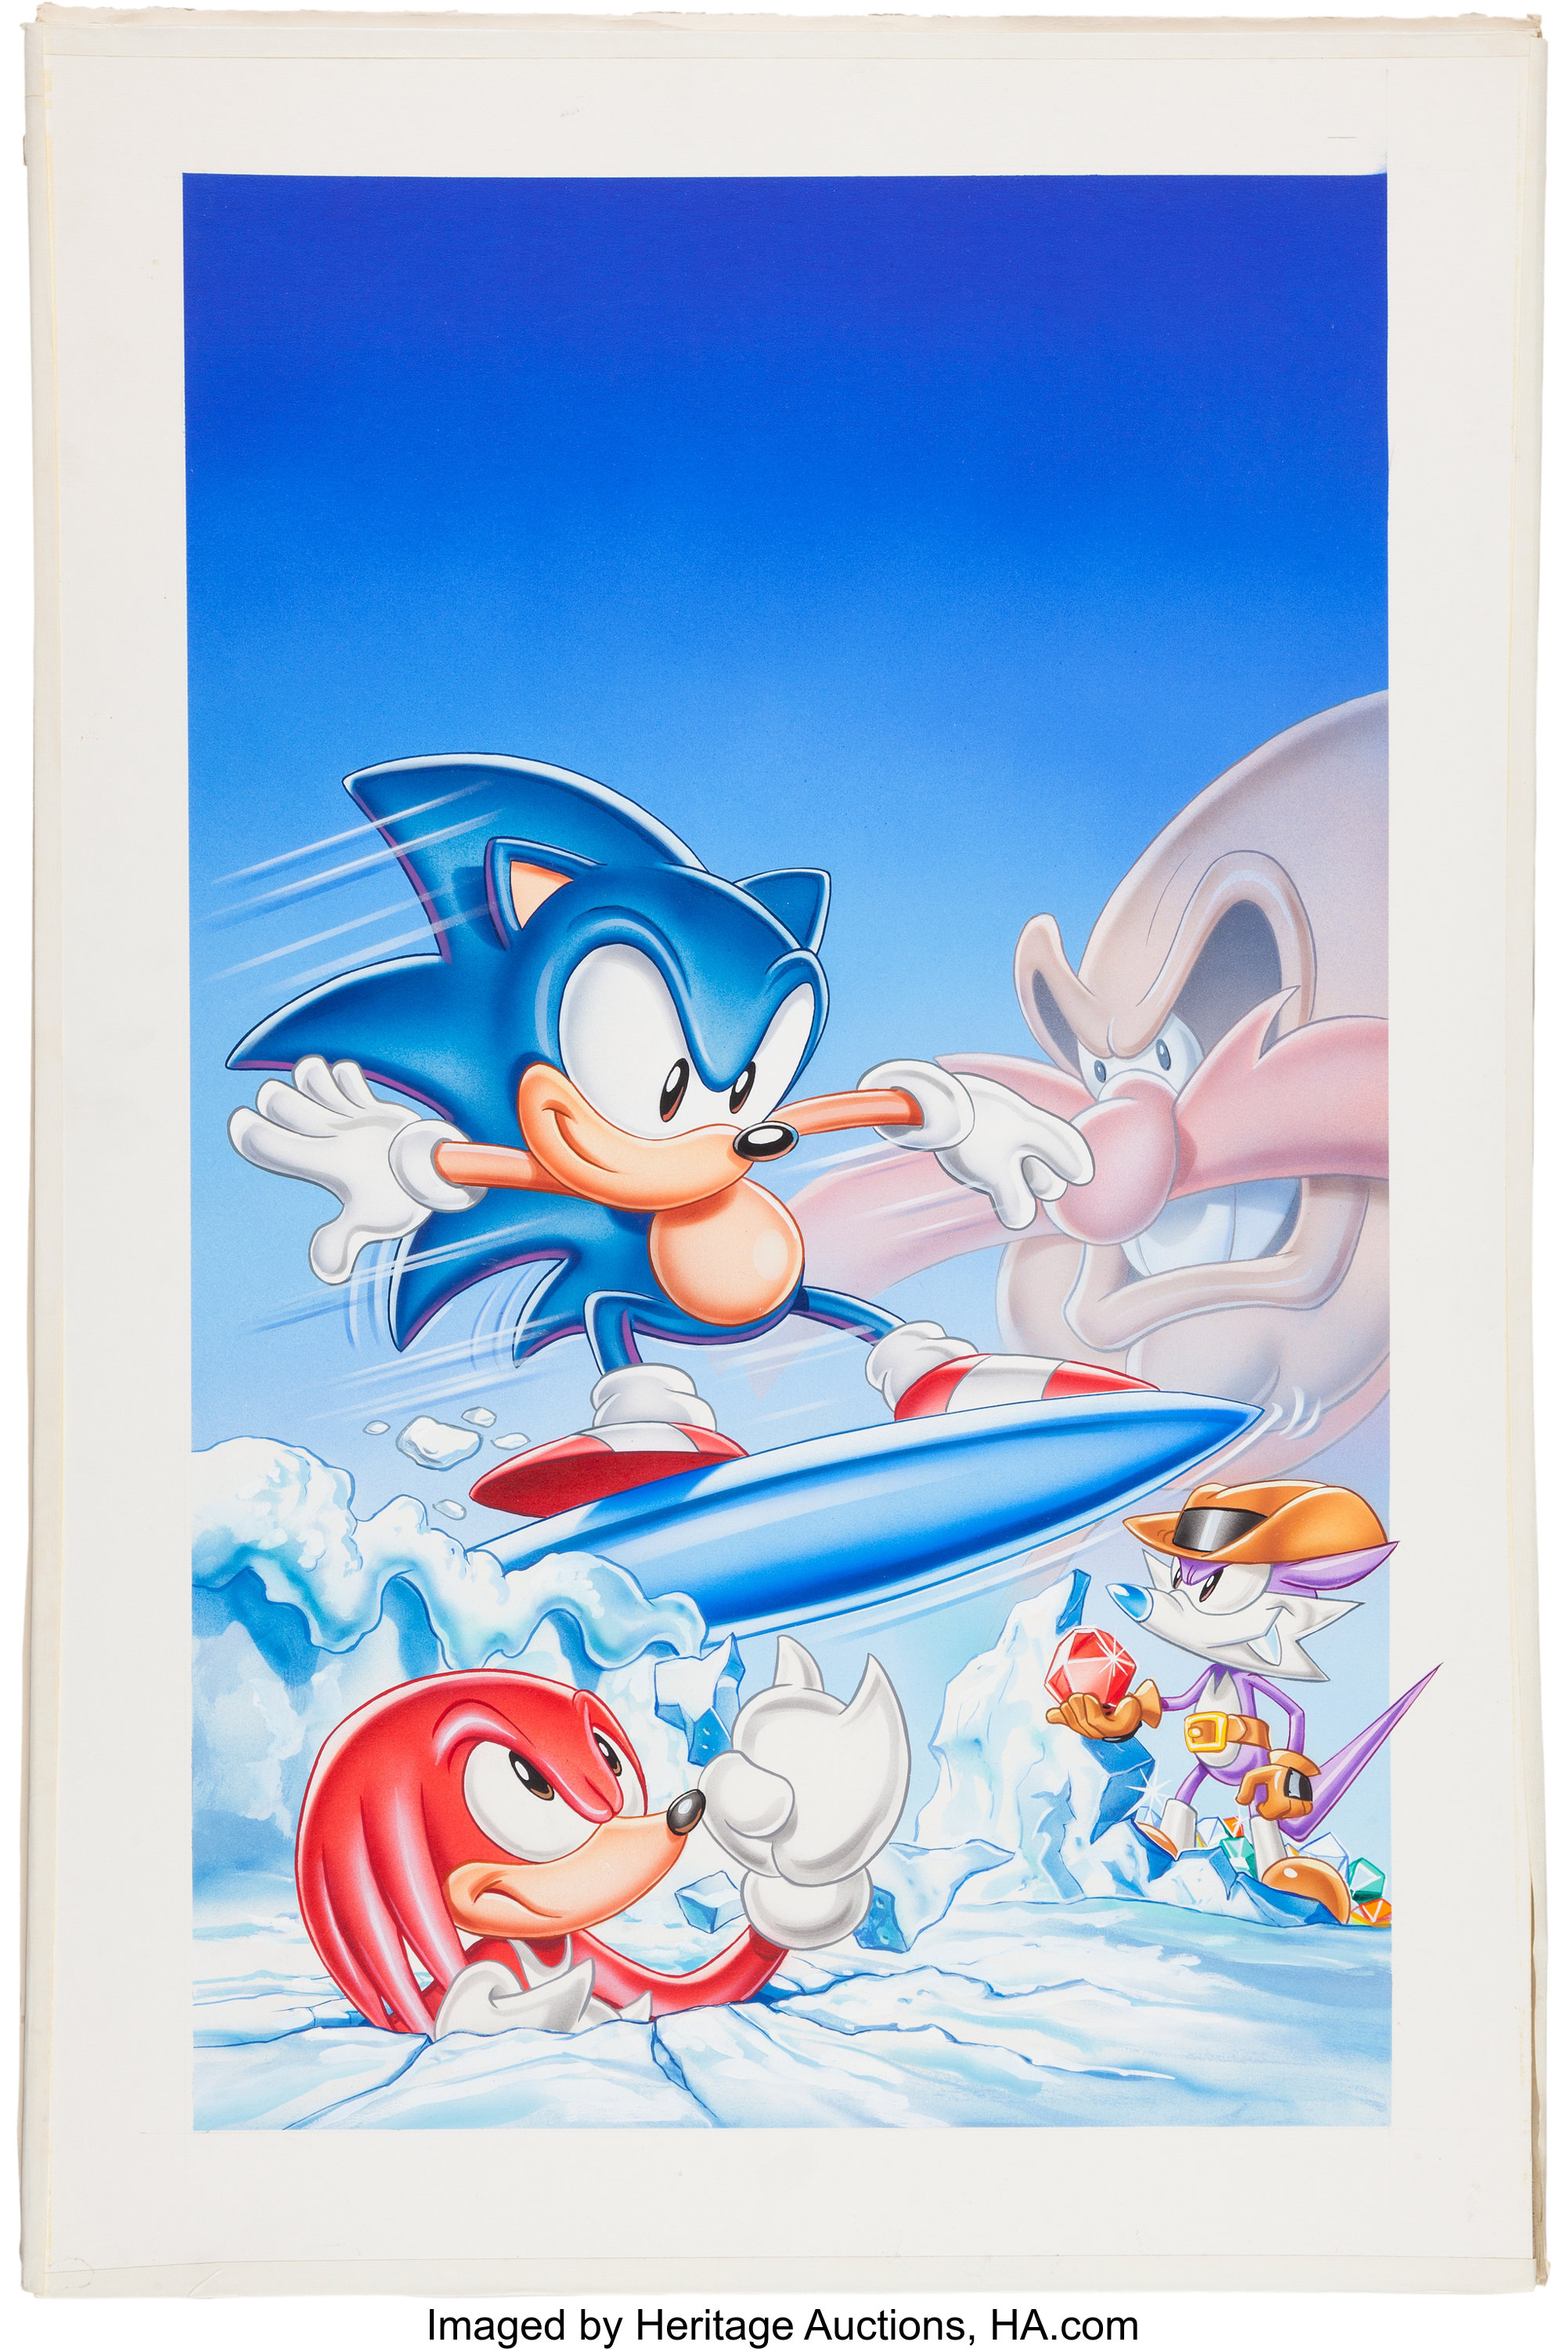 Sonic The Hedgehog Vhs Cover Illustration Original Art Lot 11684 Heritage Auctions